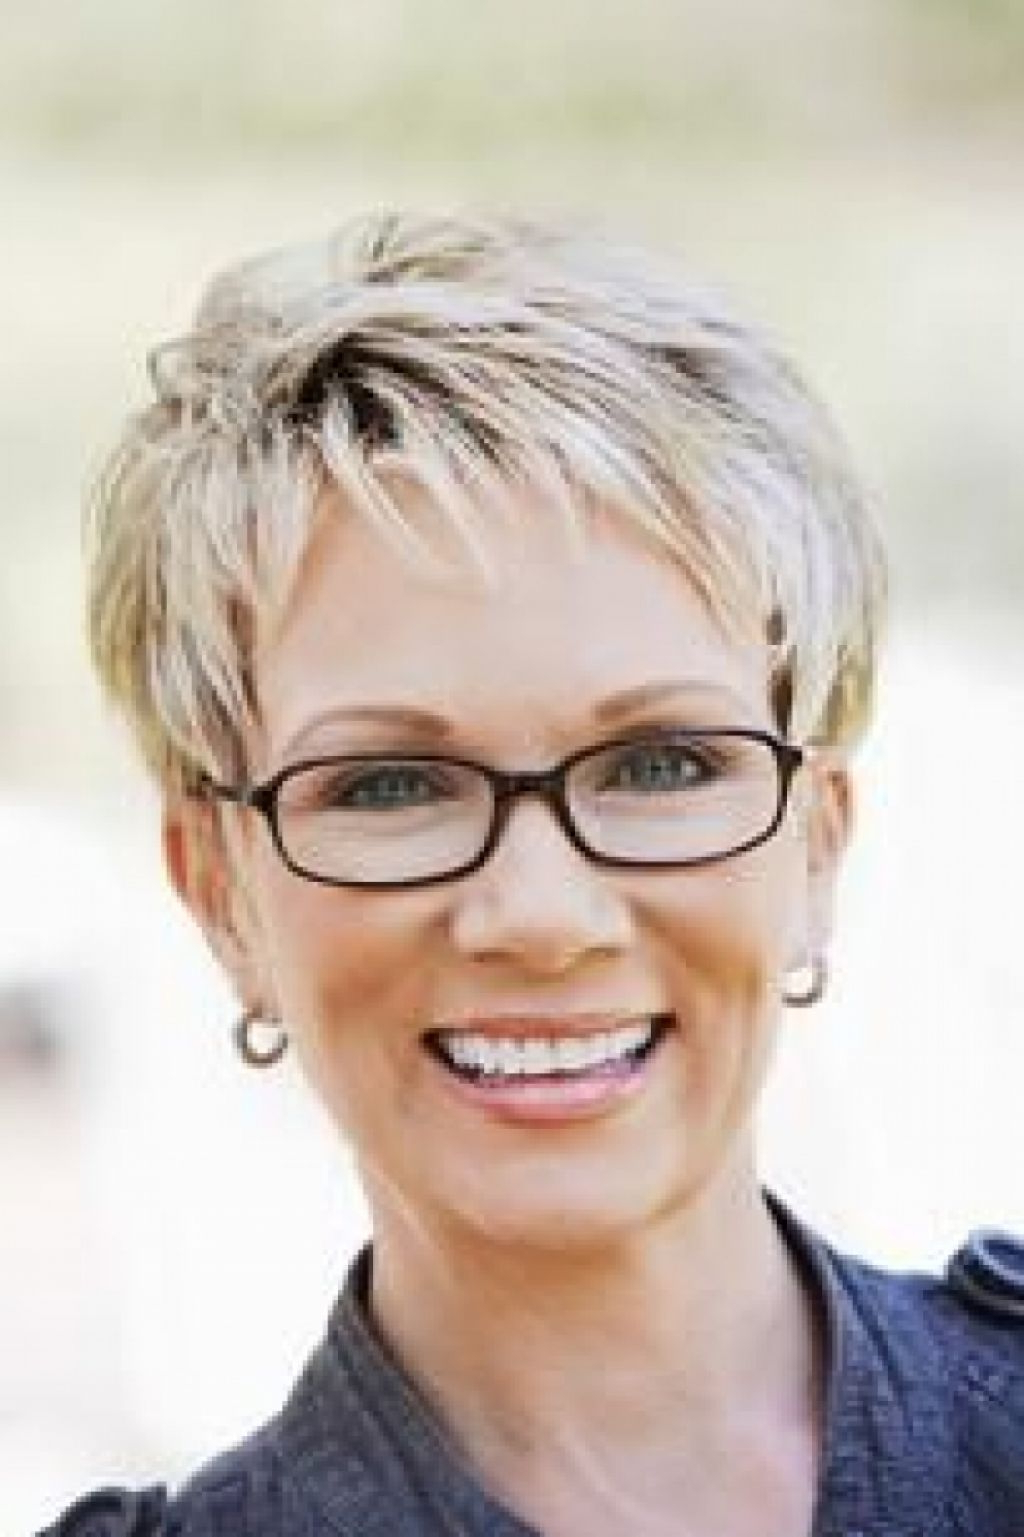 Short Hairstyles For Women Over 40 With Glasses – Hairstyle For In Short Hairstyles For Ladies With Glasses (View 9 of 25)